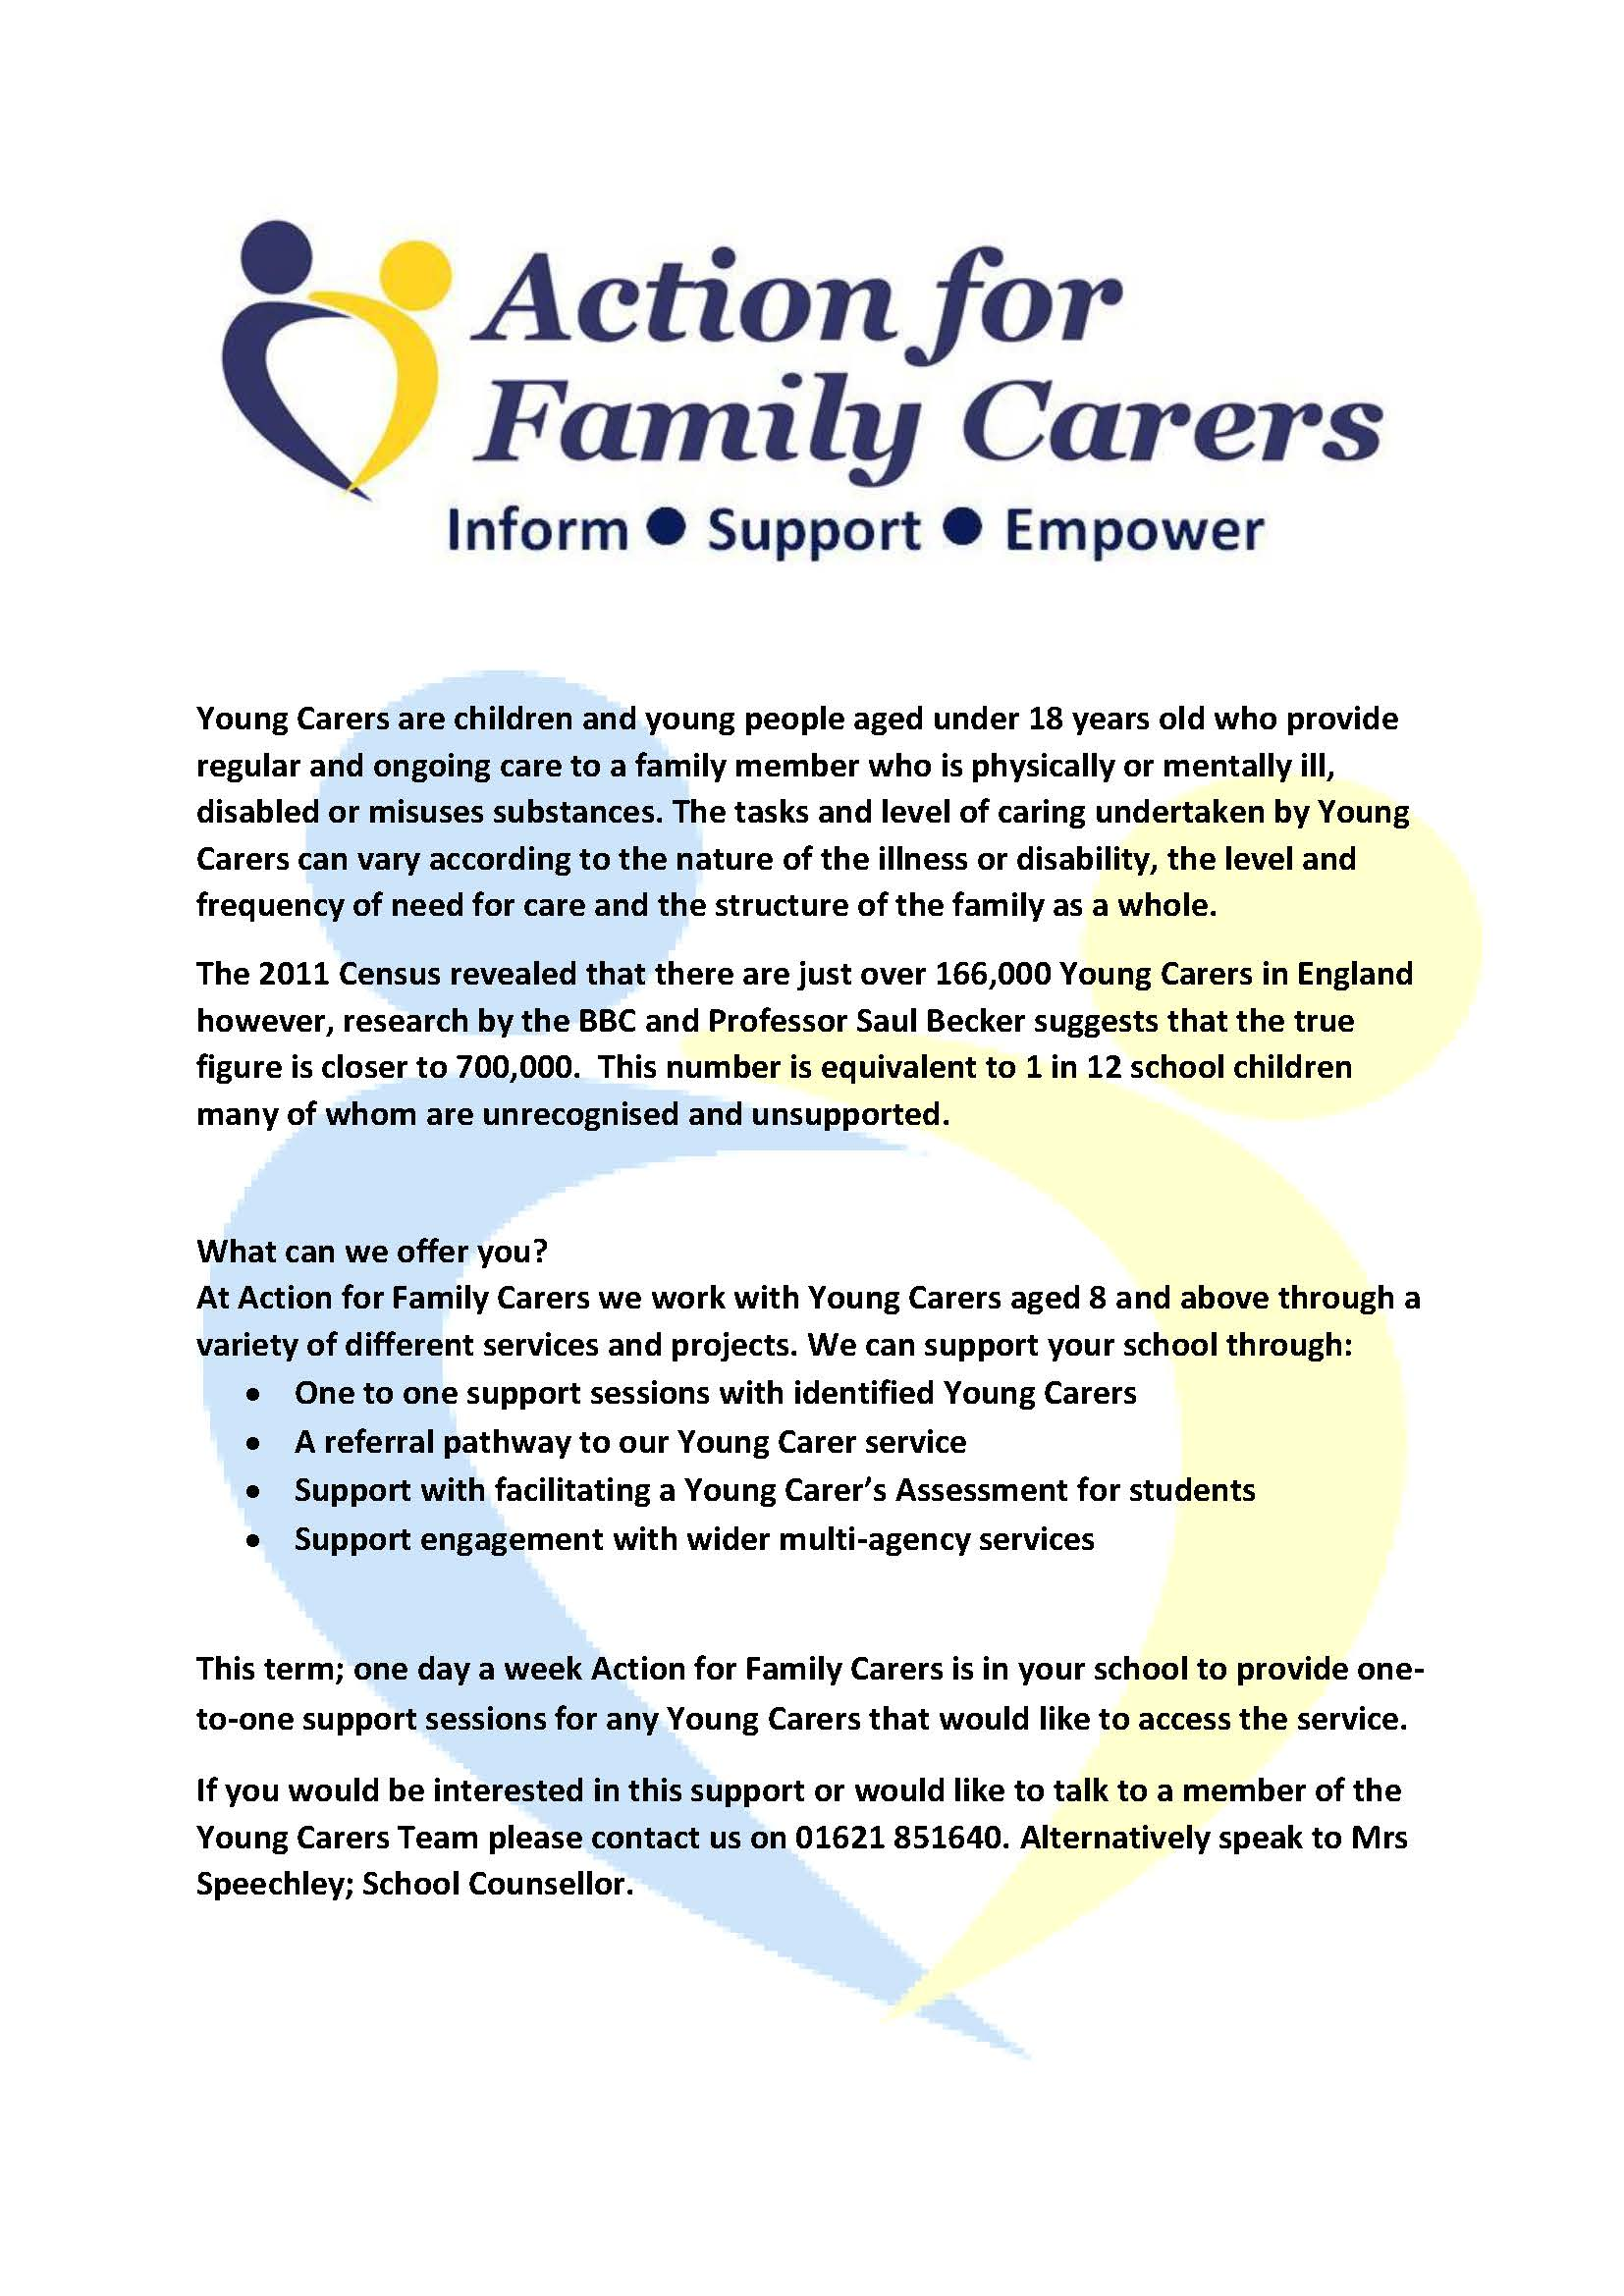 Action for Family Carers